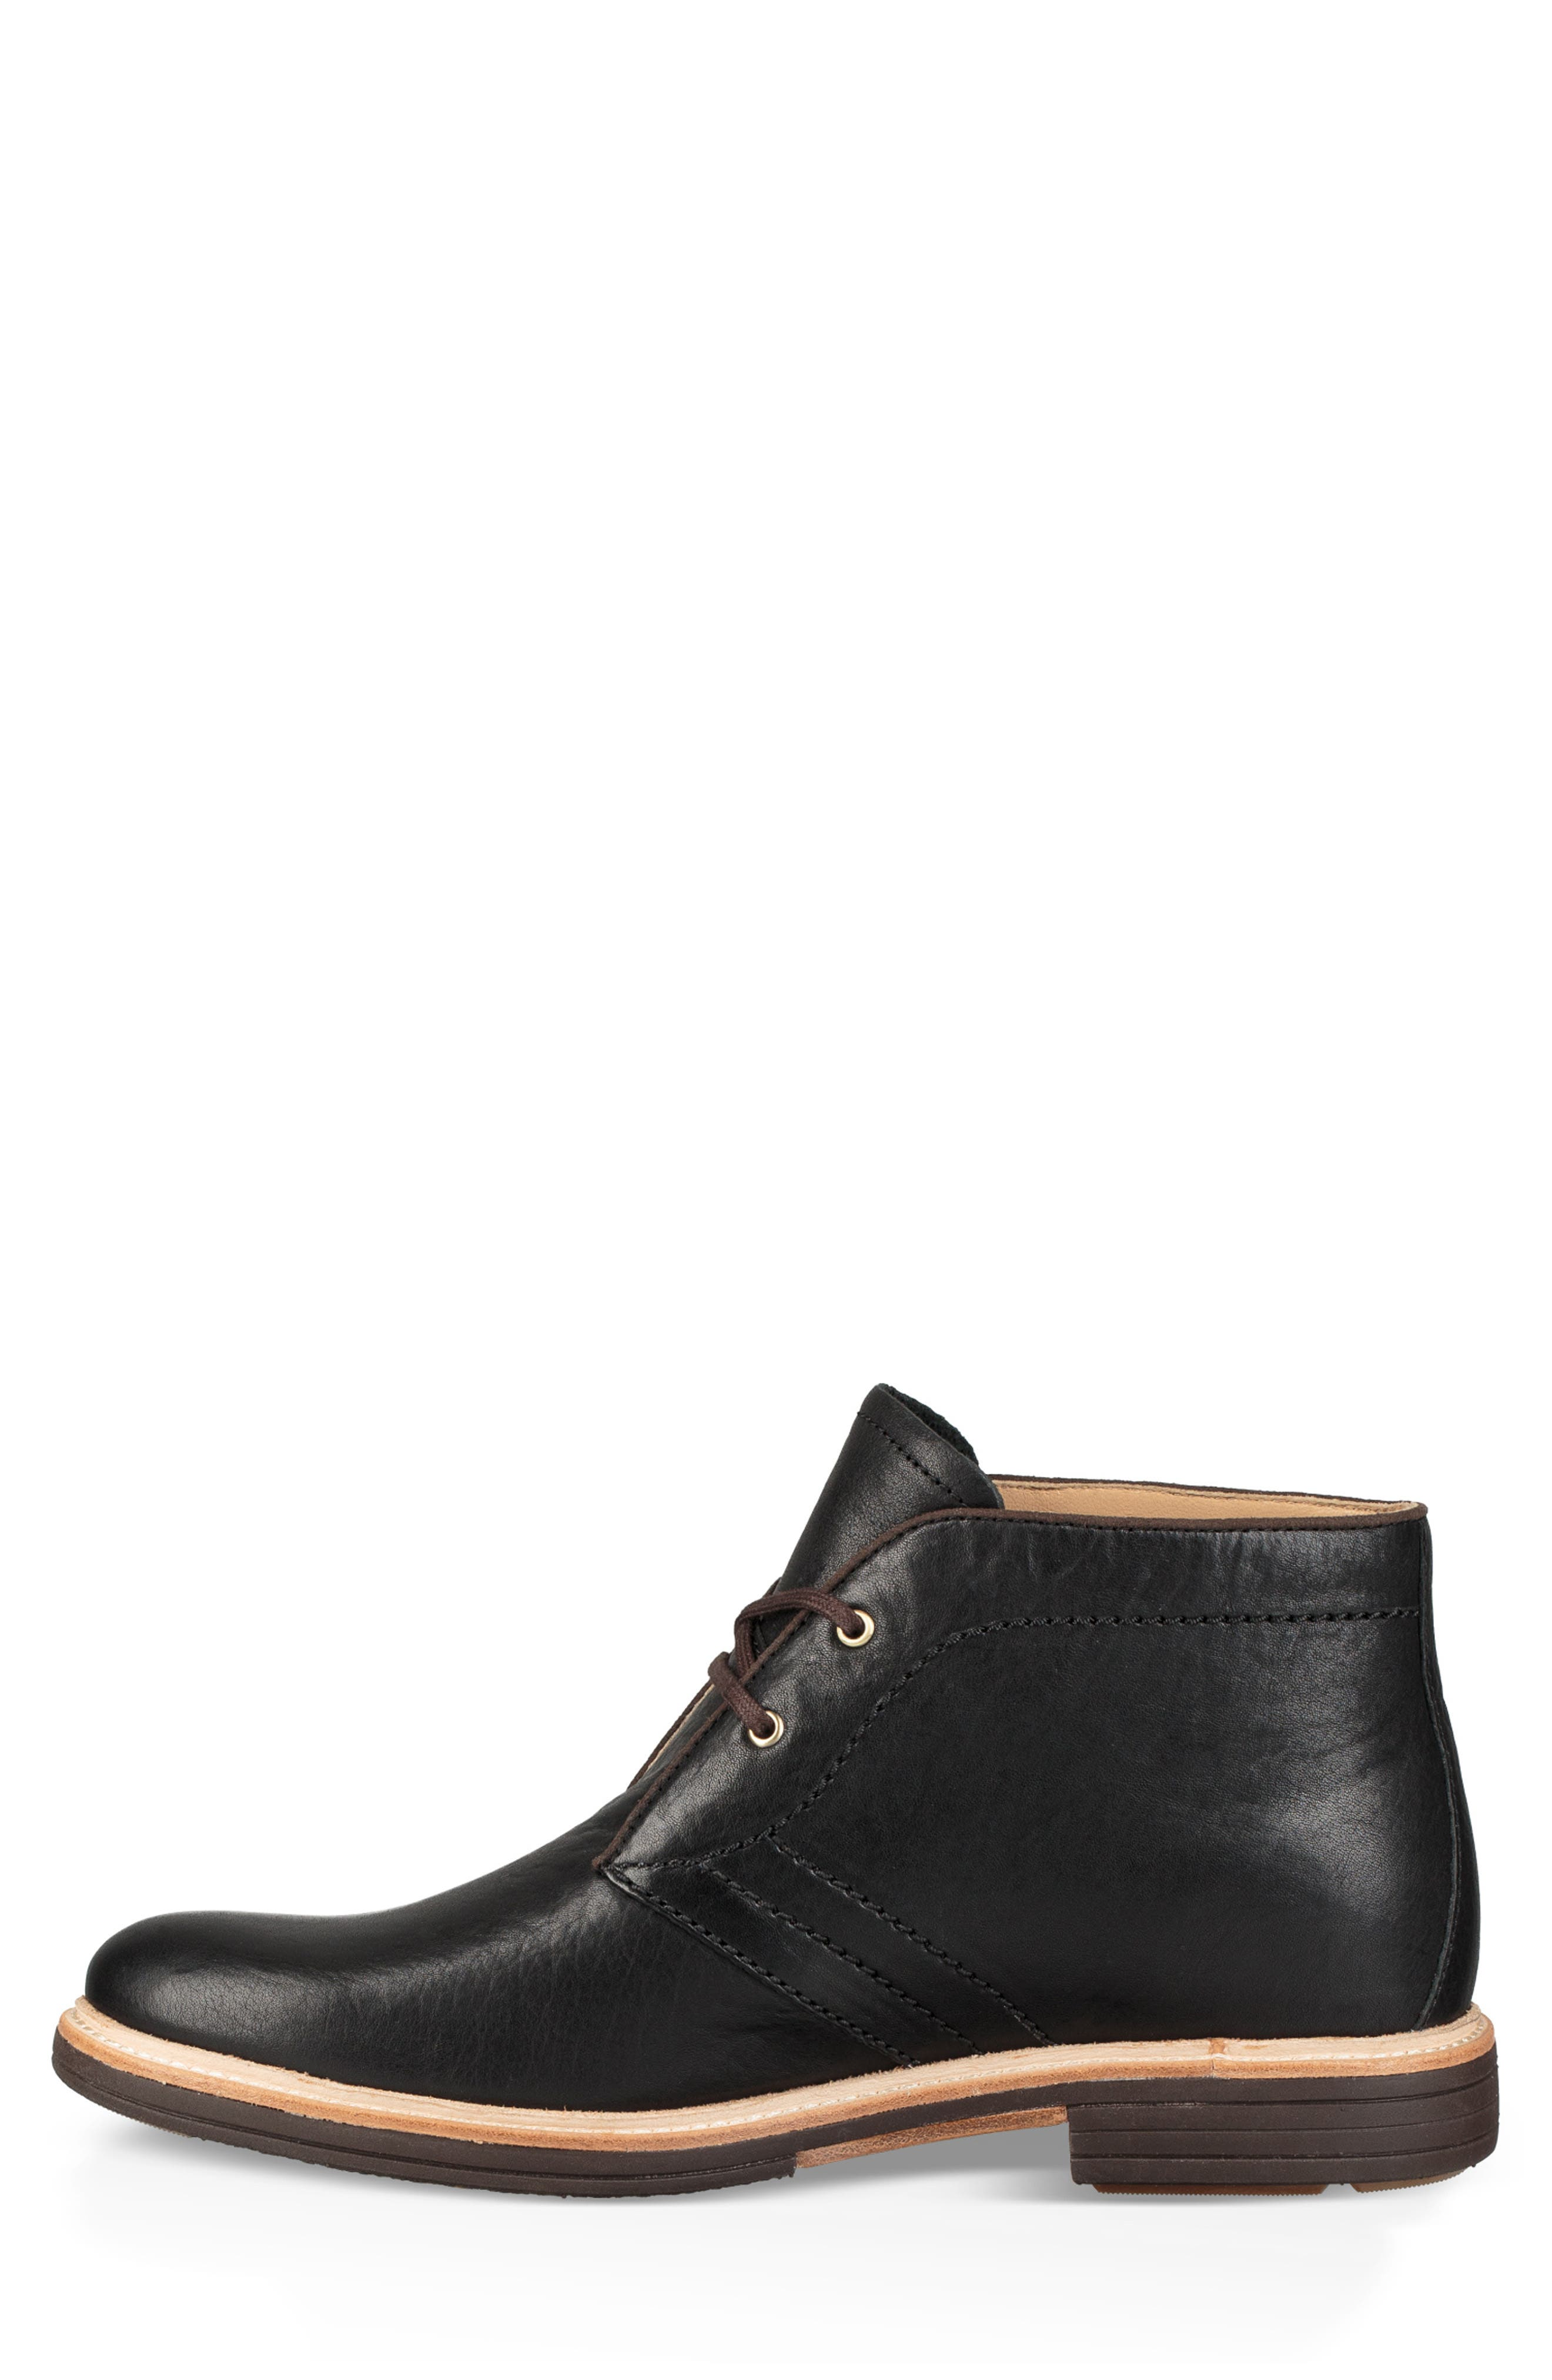 UGG<SUP>®</SUP>, Australia Dagmann Chukka Boot, Alternate thumbnail 3, color, BLACK LEATHER/SUEDE